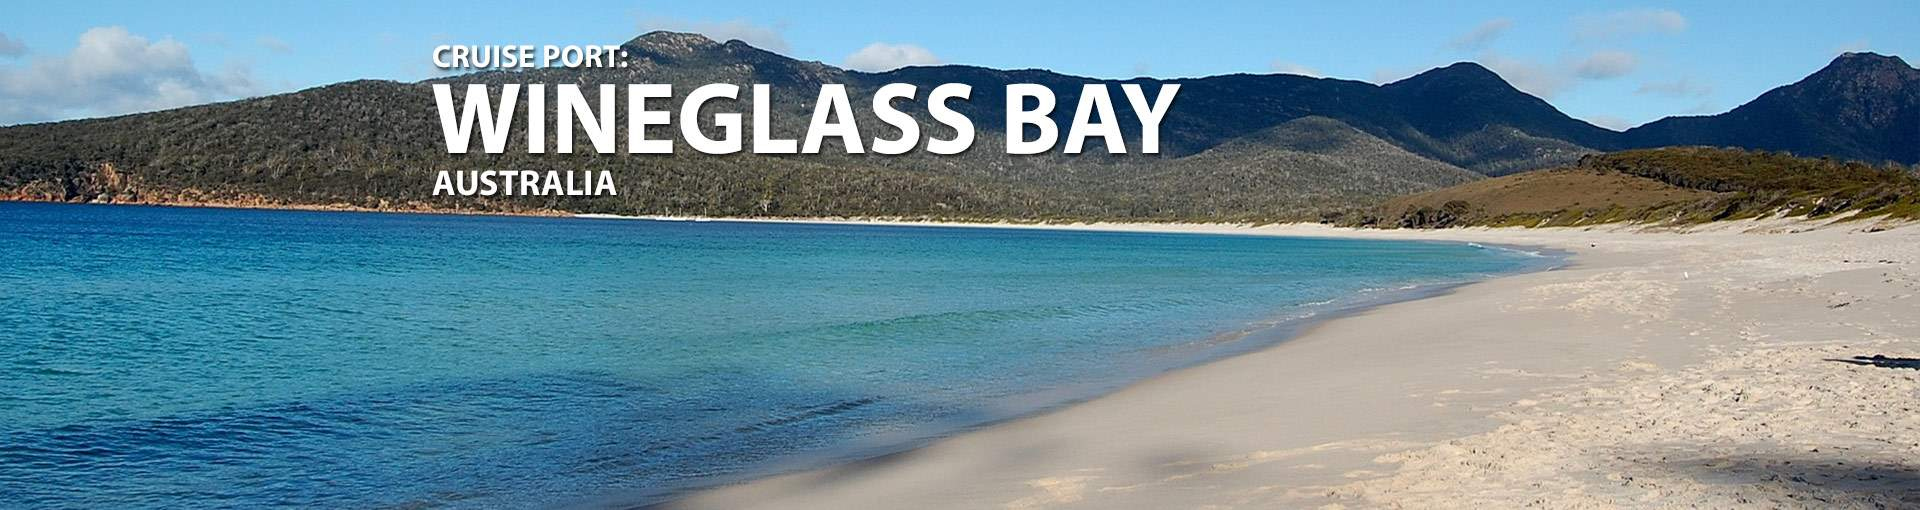 Wineglass Bay, Australia Cruise Port